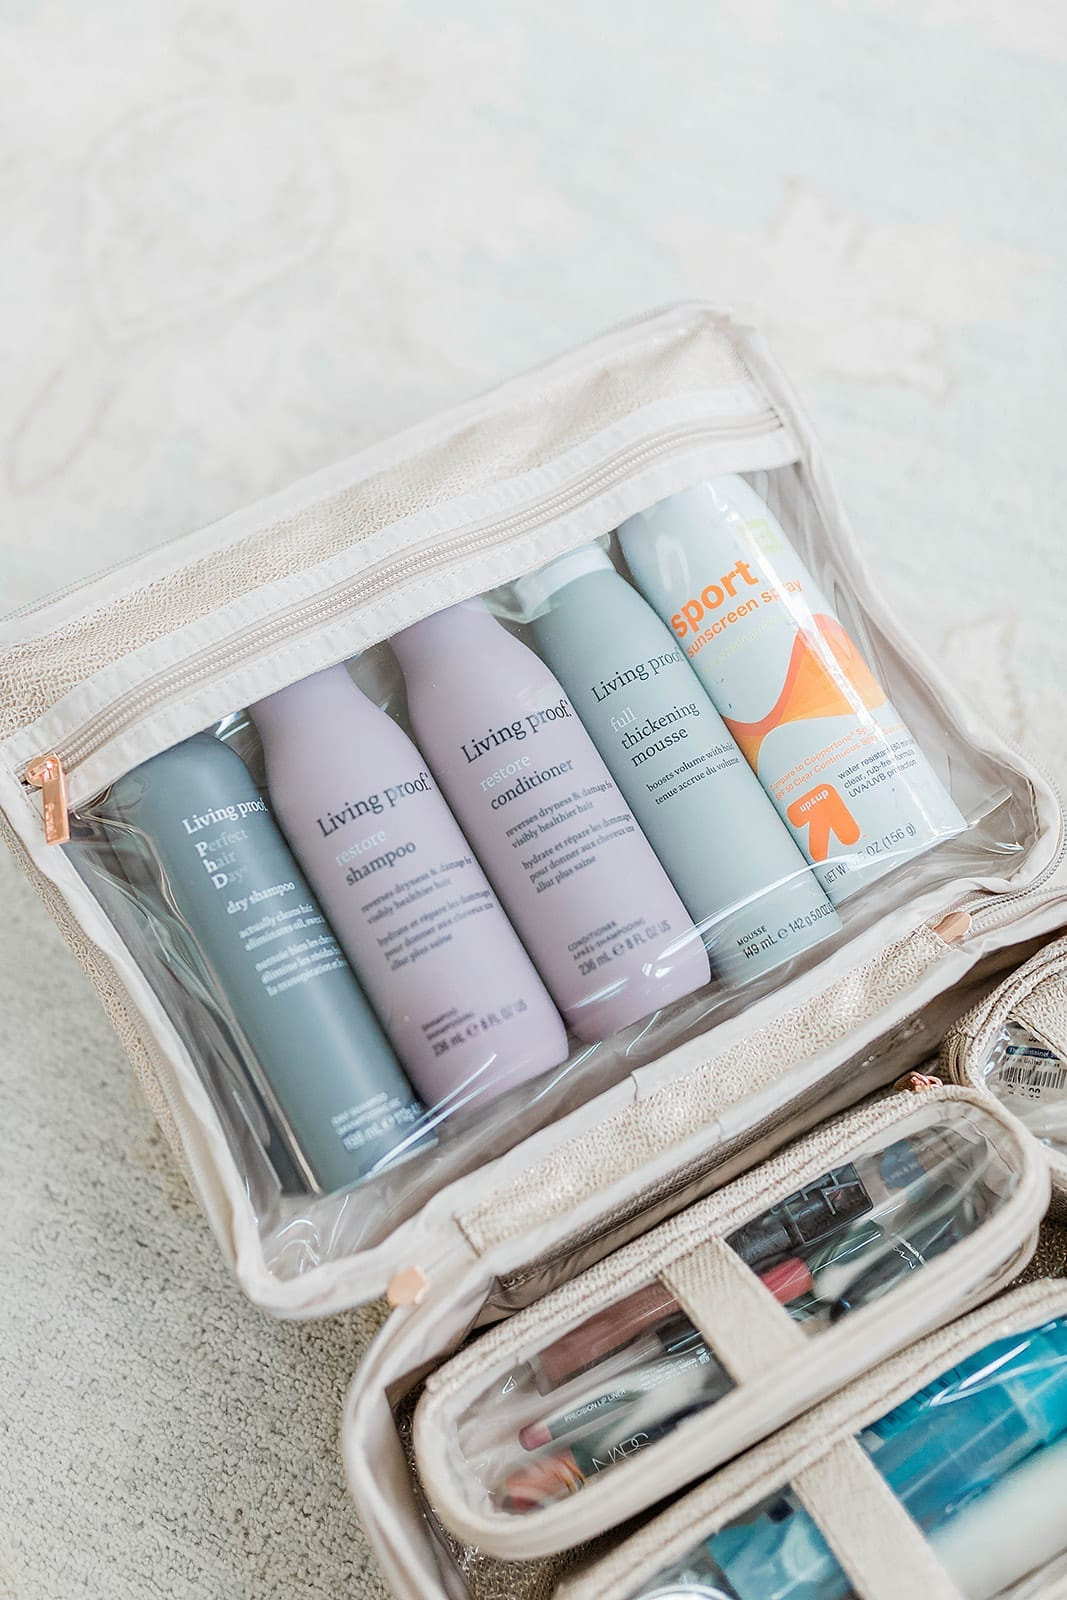 How to store full size shampoo bottles when you travel so that they don't spill!